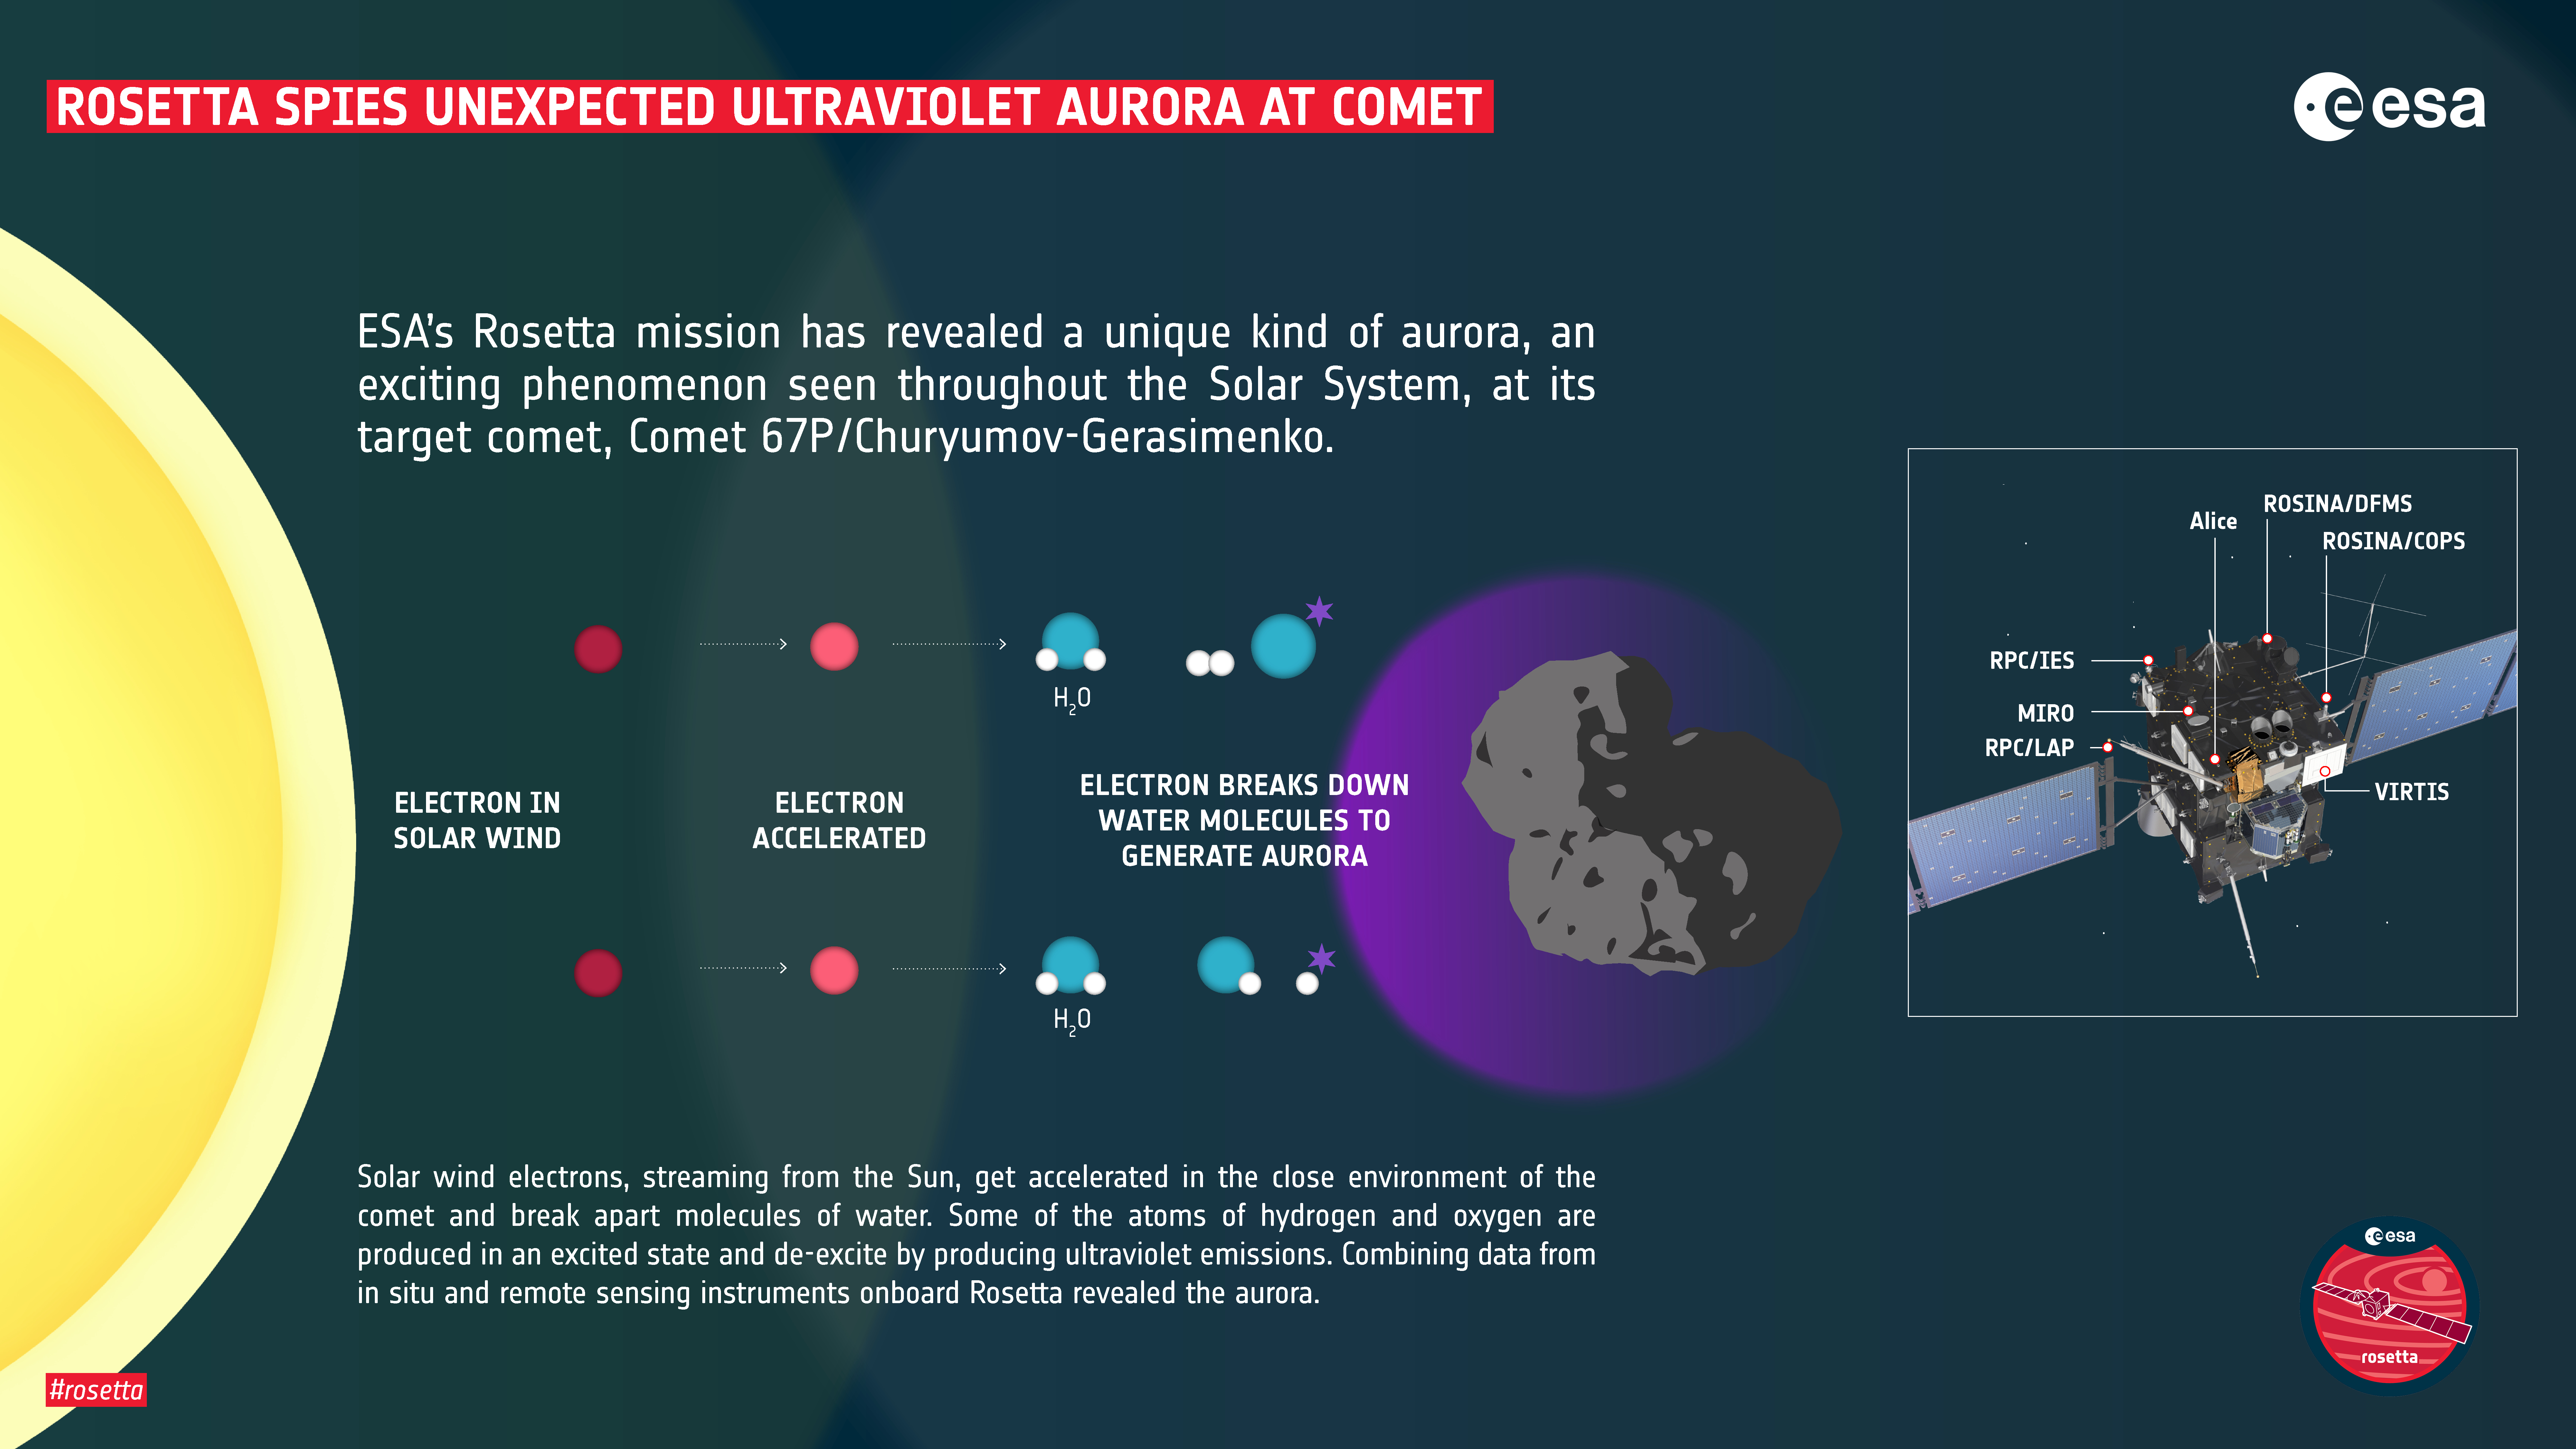 Key Stages of the Mechanism by Which the Aurora Is Produced